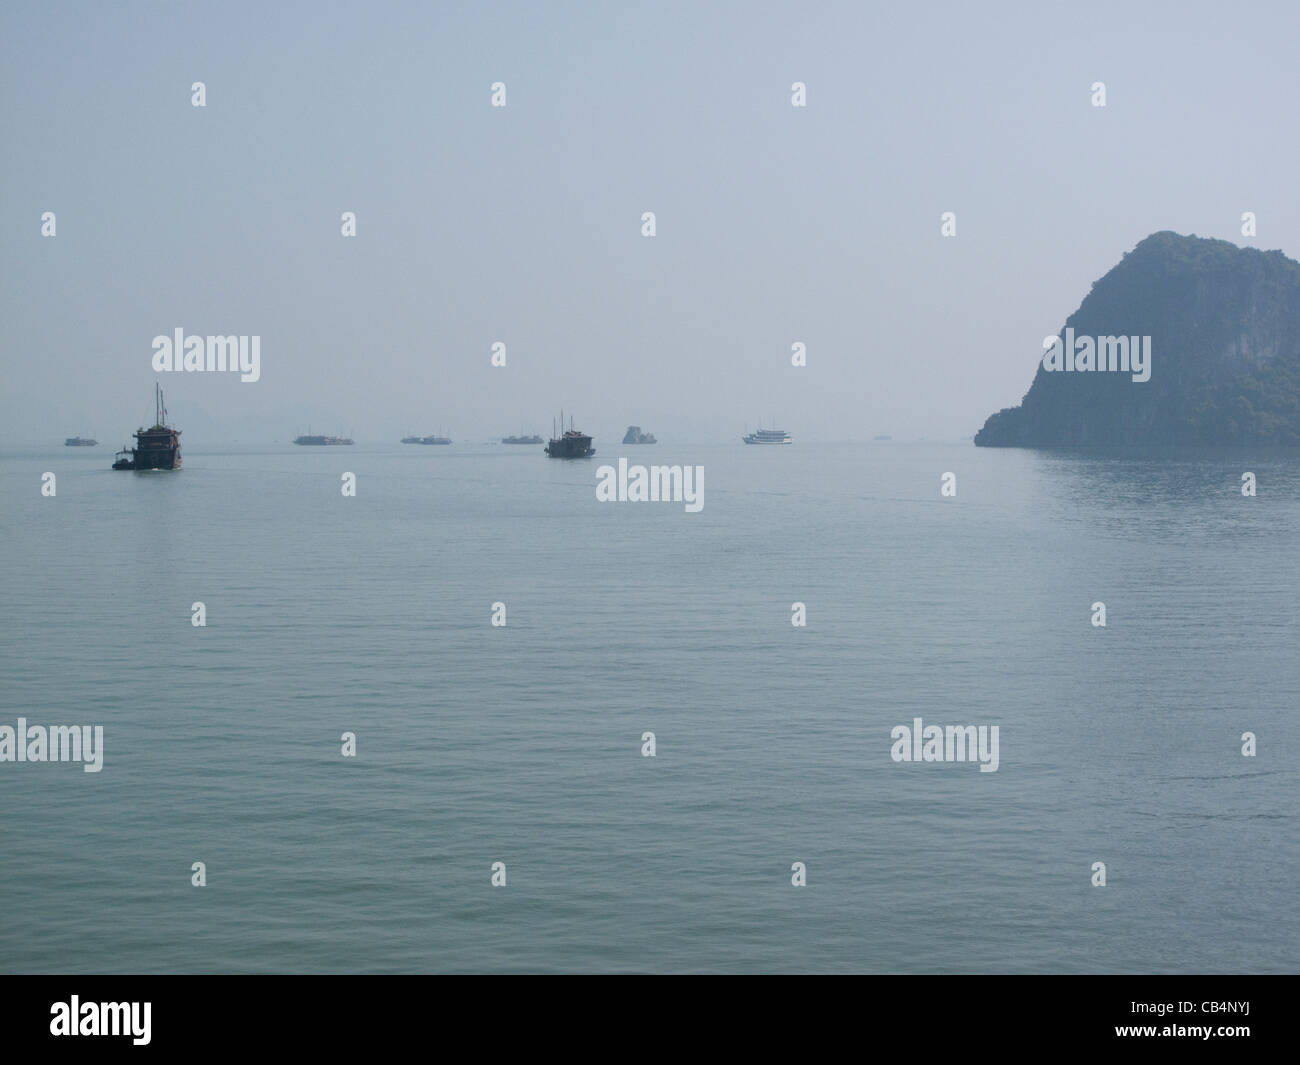 View of junk boats in the distance in Halong Bay, Vietnam - Stock Image